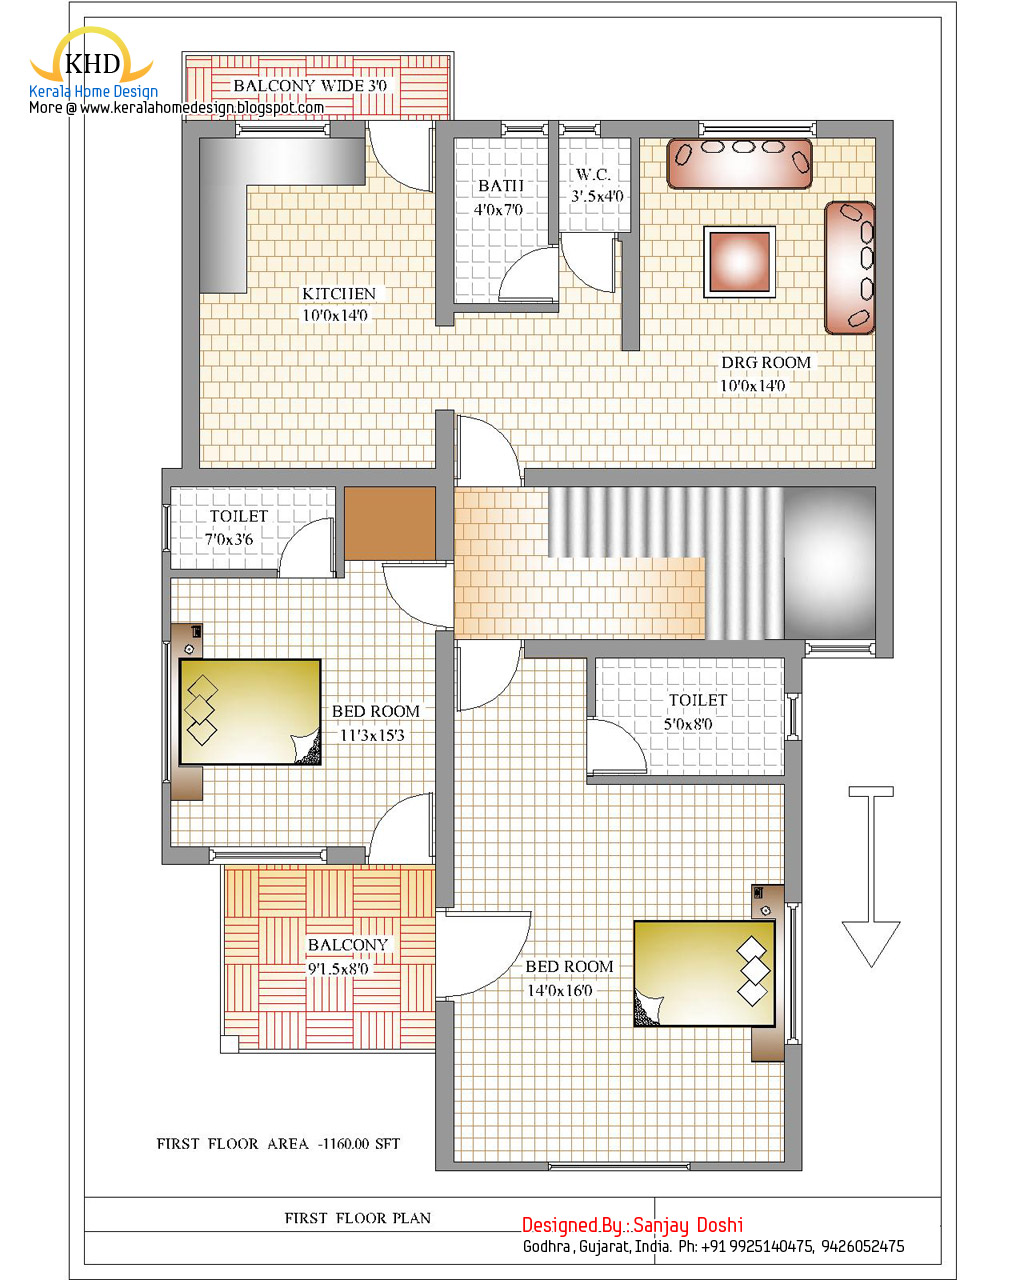 Best Small House Plans from Houseplans.com